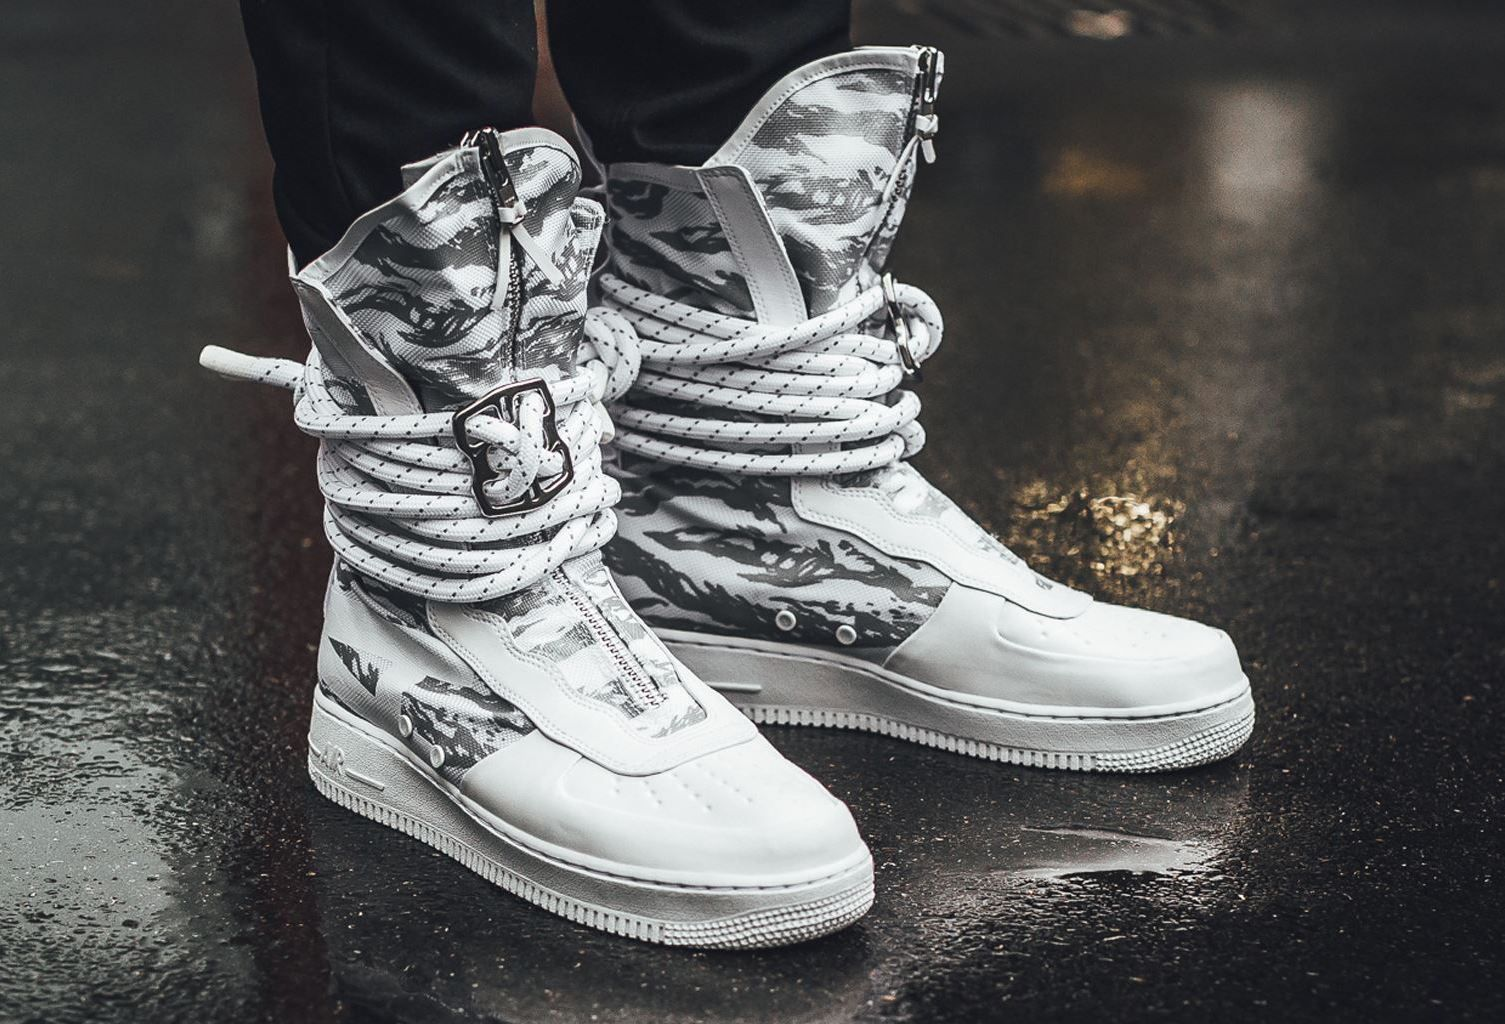 Related image | Sneakers men fashion, Sneakers fashion, Nike